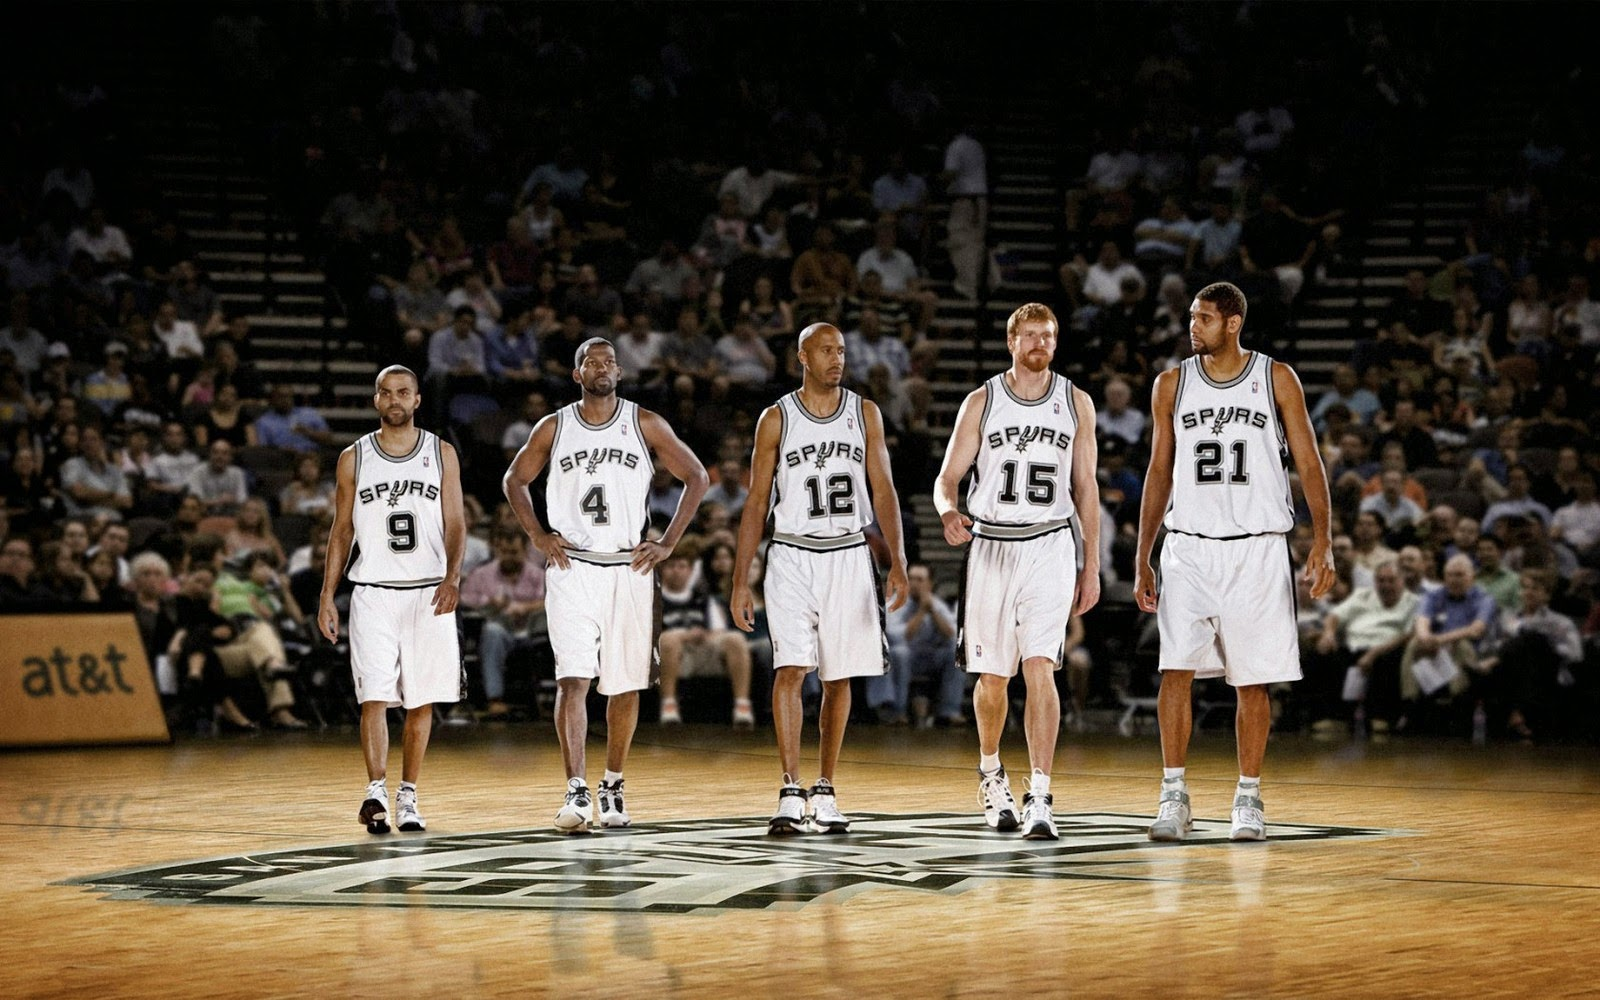 C A T San Antonio Spurs 2014 Starting Lineup Nba Hd Desktop Wallpaper